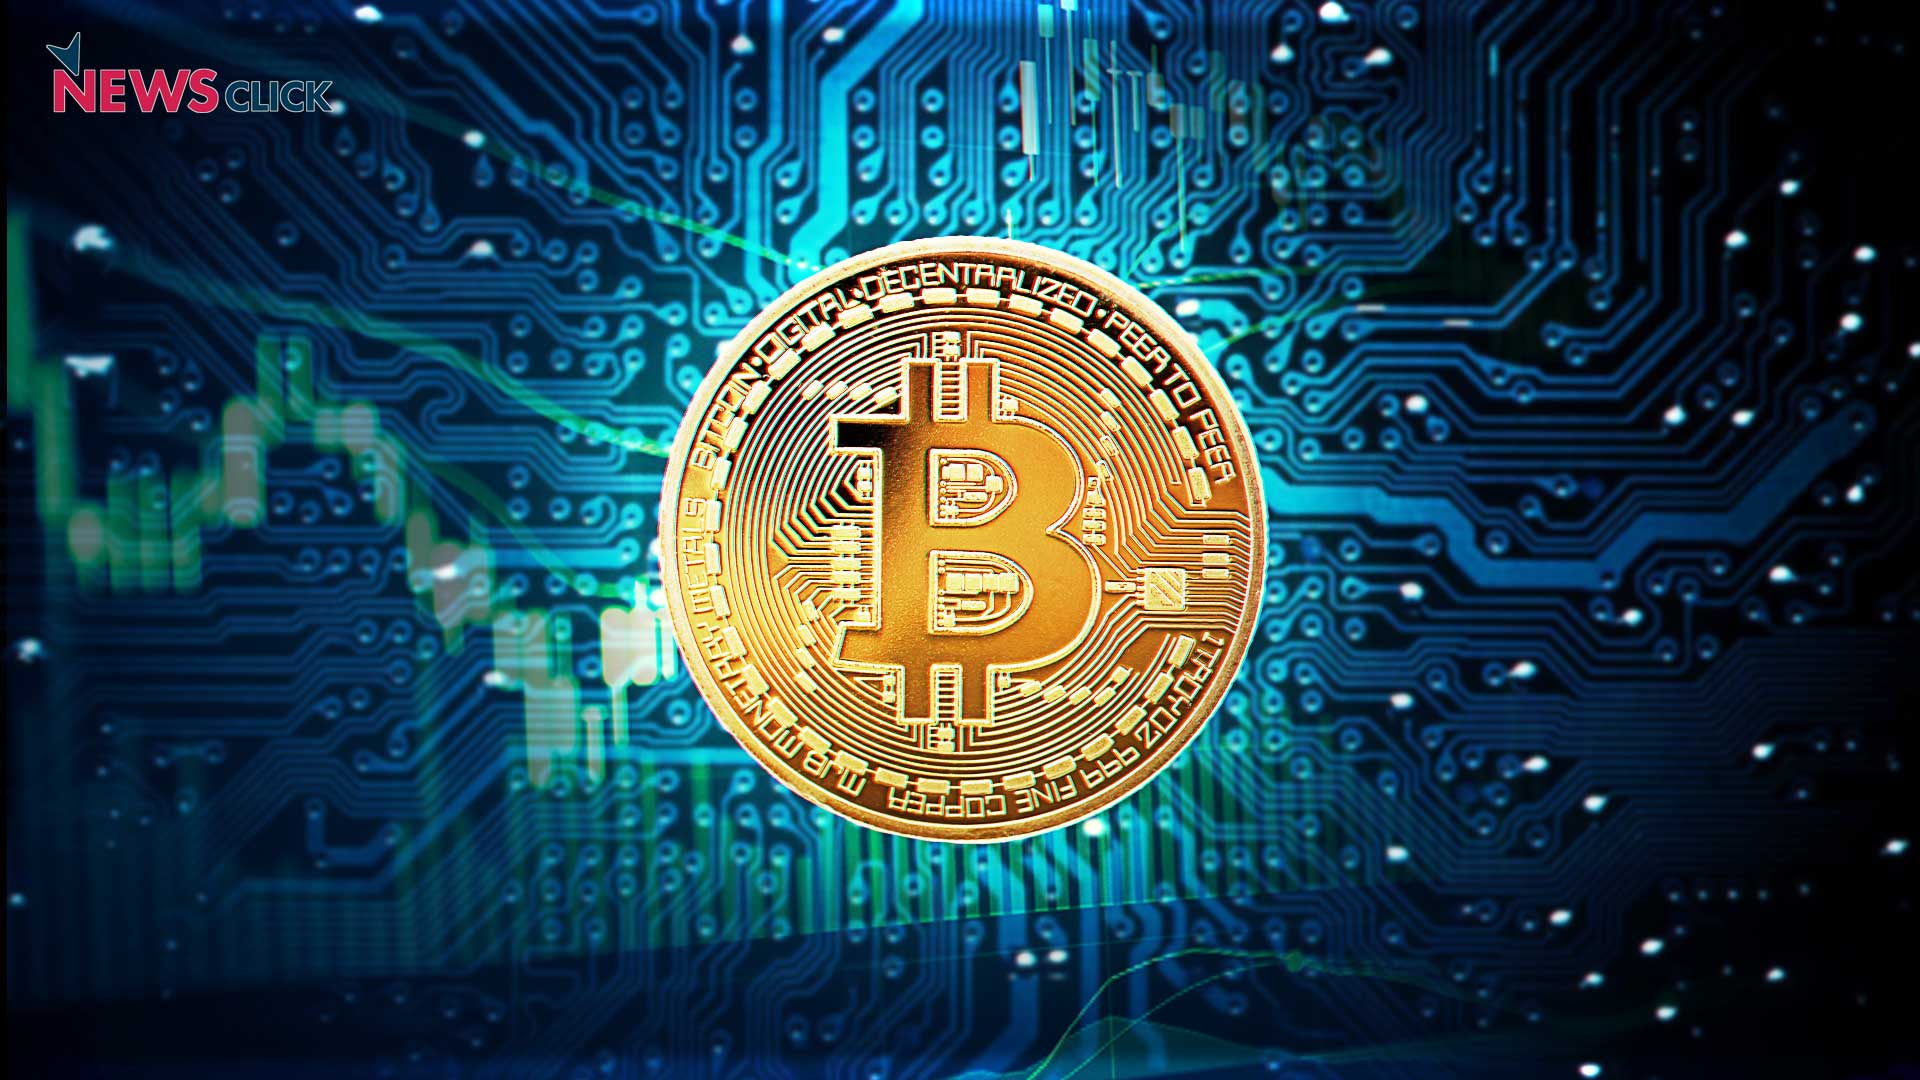 New economic perspectives bitcoins acca insurance matched betting scam